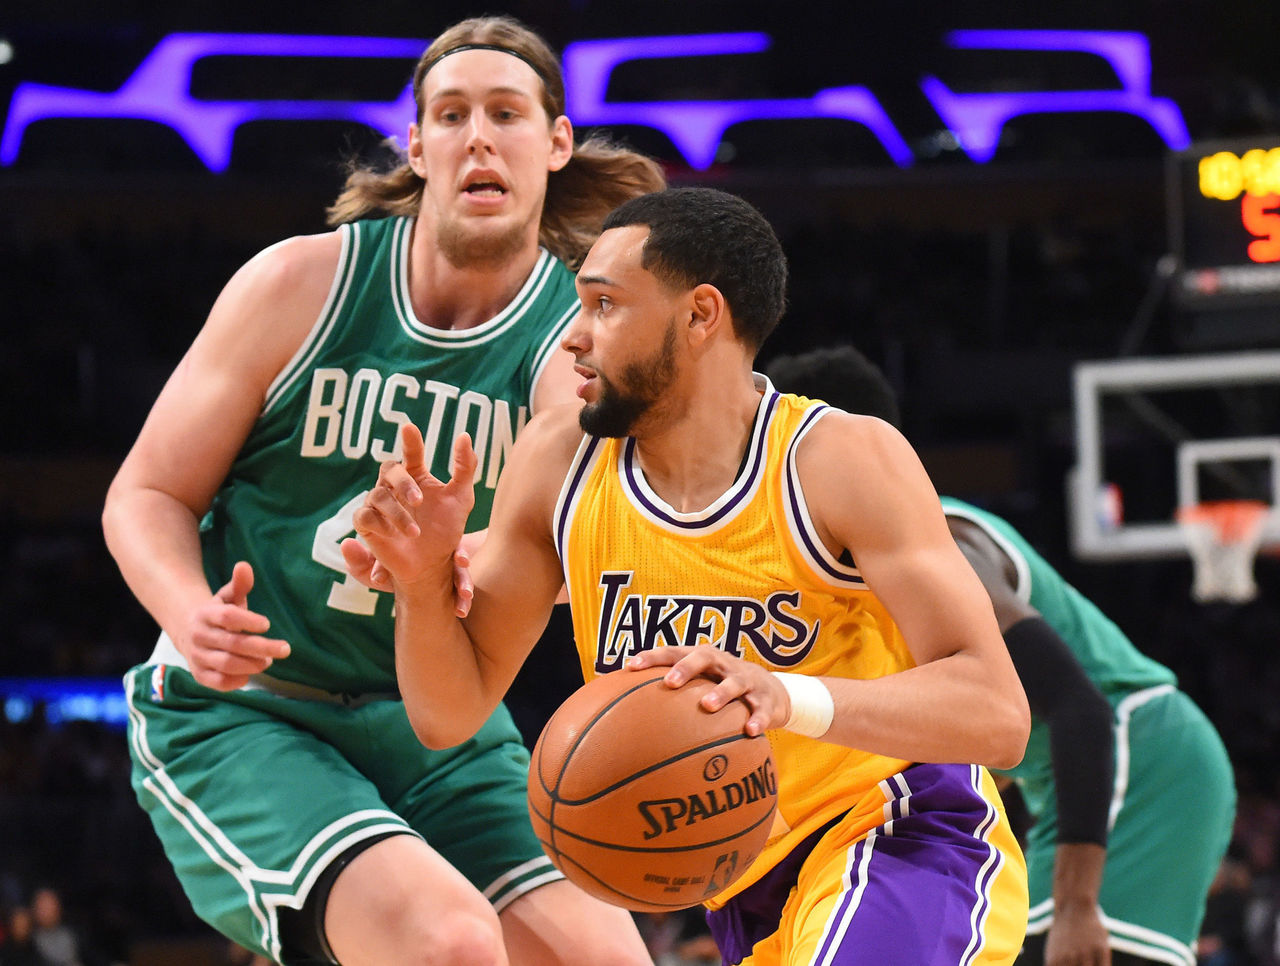 Cropped 2017 03 04t045820z 196345345 nocid rtrmadp 3 nba boston celtics at los angeles lakers